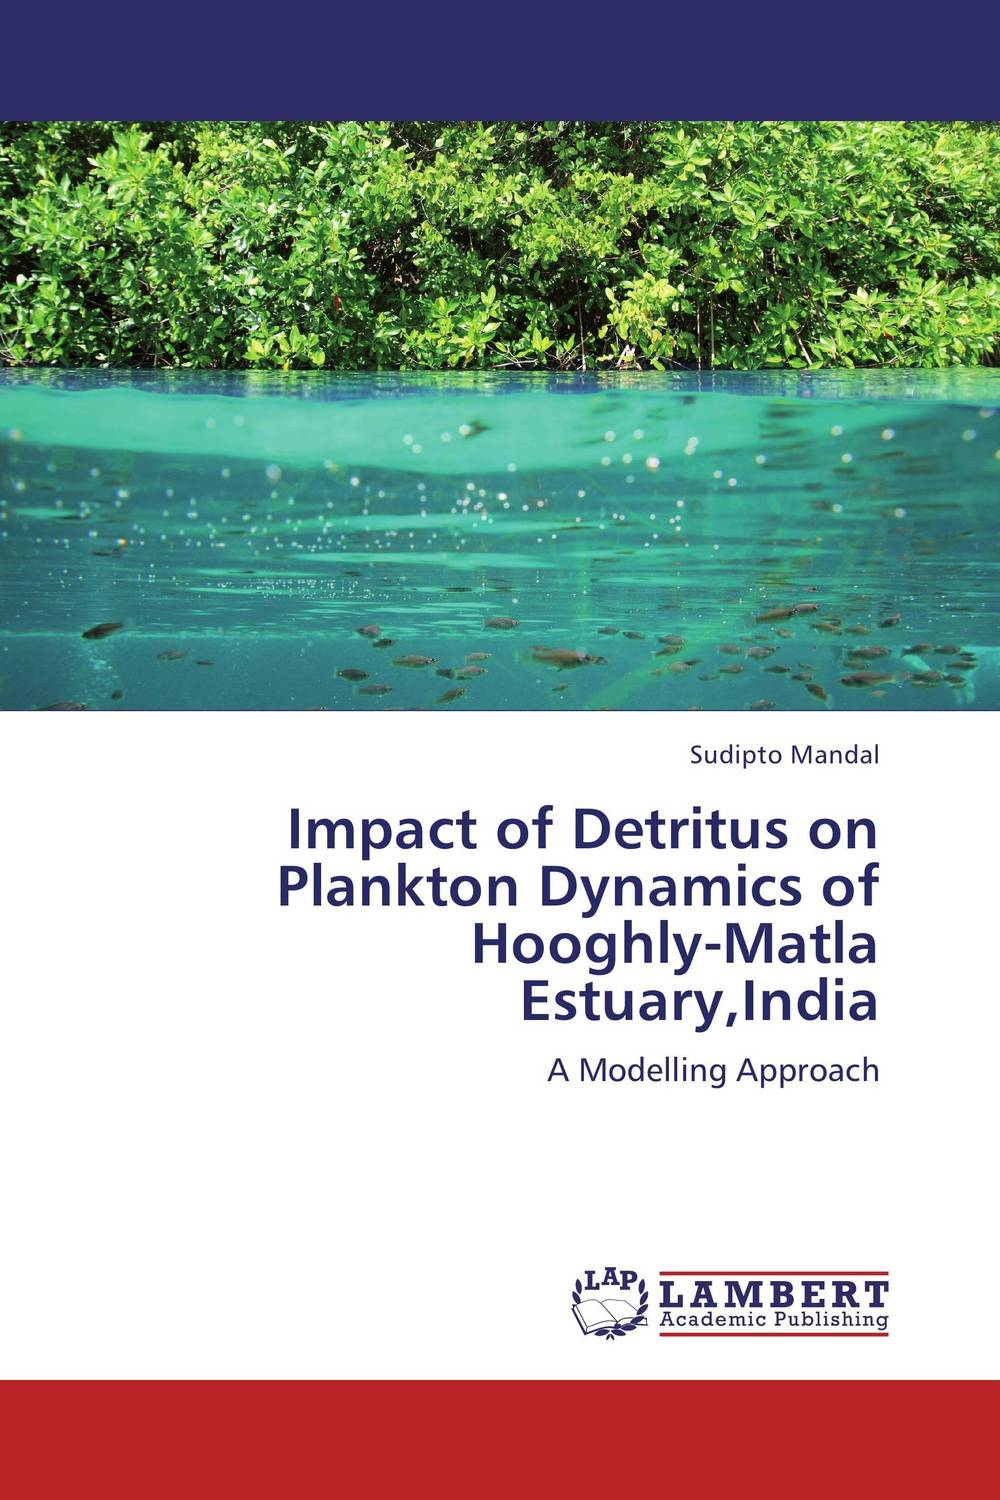 Impact of Detritus on Plankton Dynamics of Hooghly-Matla Estuary,India nutrient dynamics in a pristine subtropical lagoon estuarine system